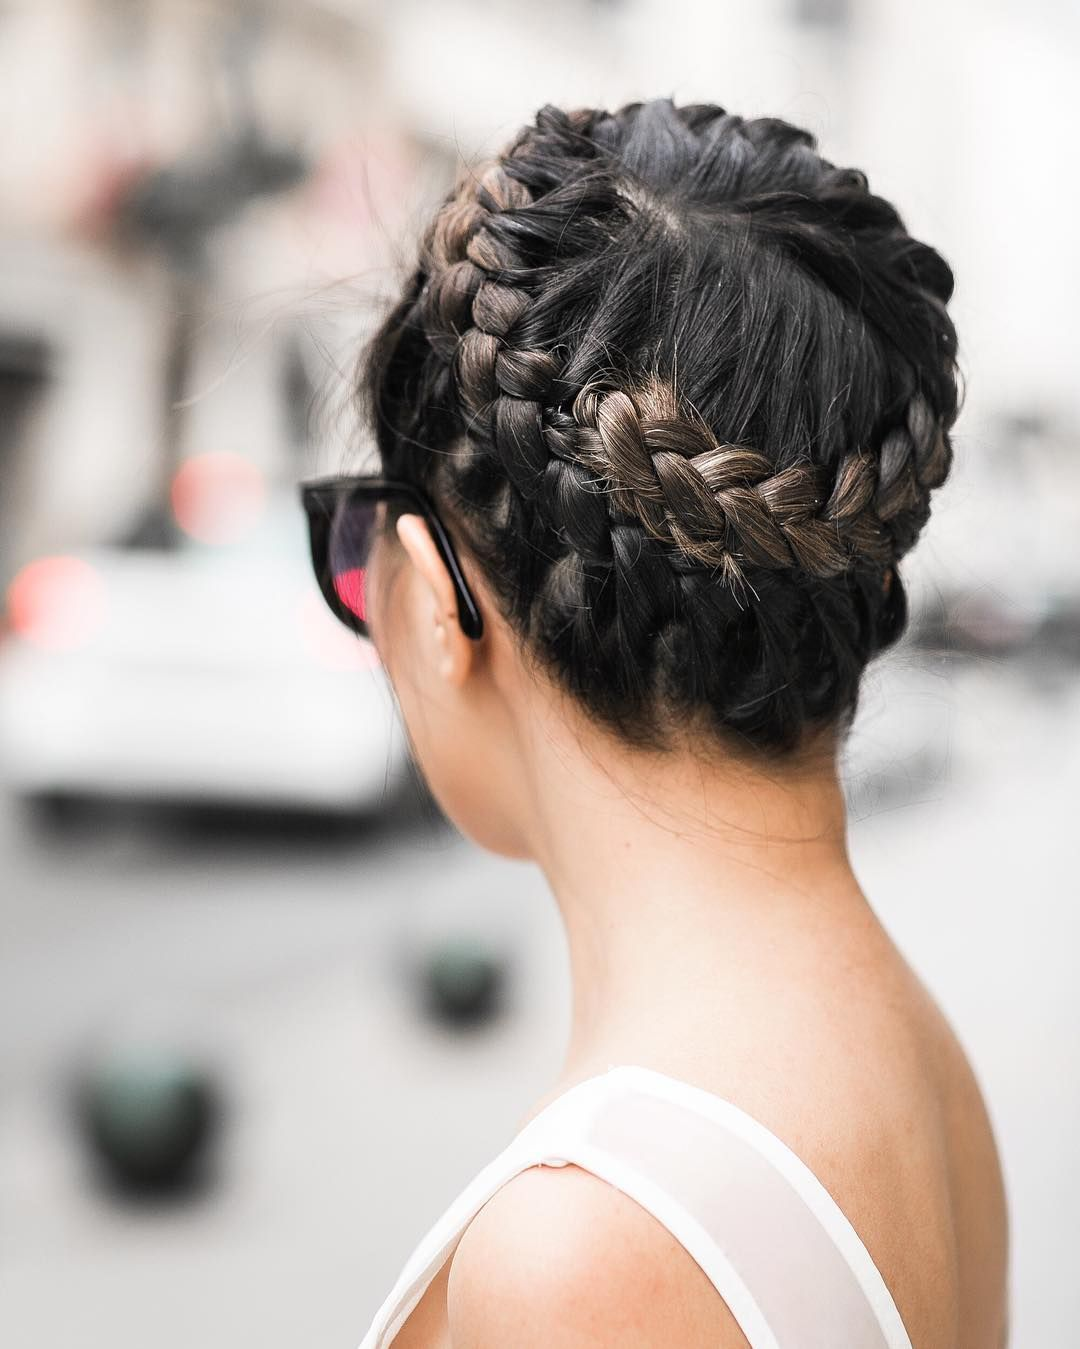 Crown Braid Wedding Hairstyles: We Cannot Get Enough Of This Stunning Tight Braided Crown